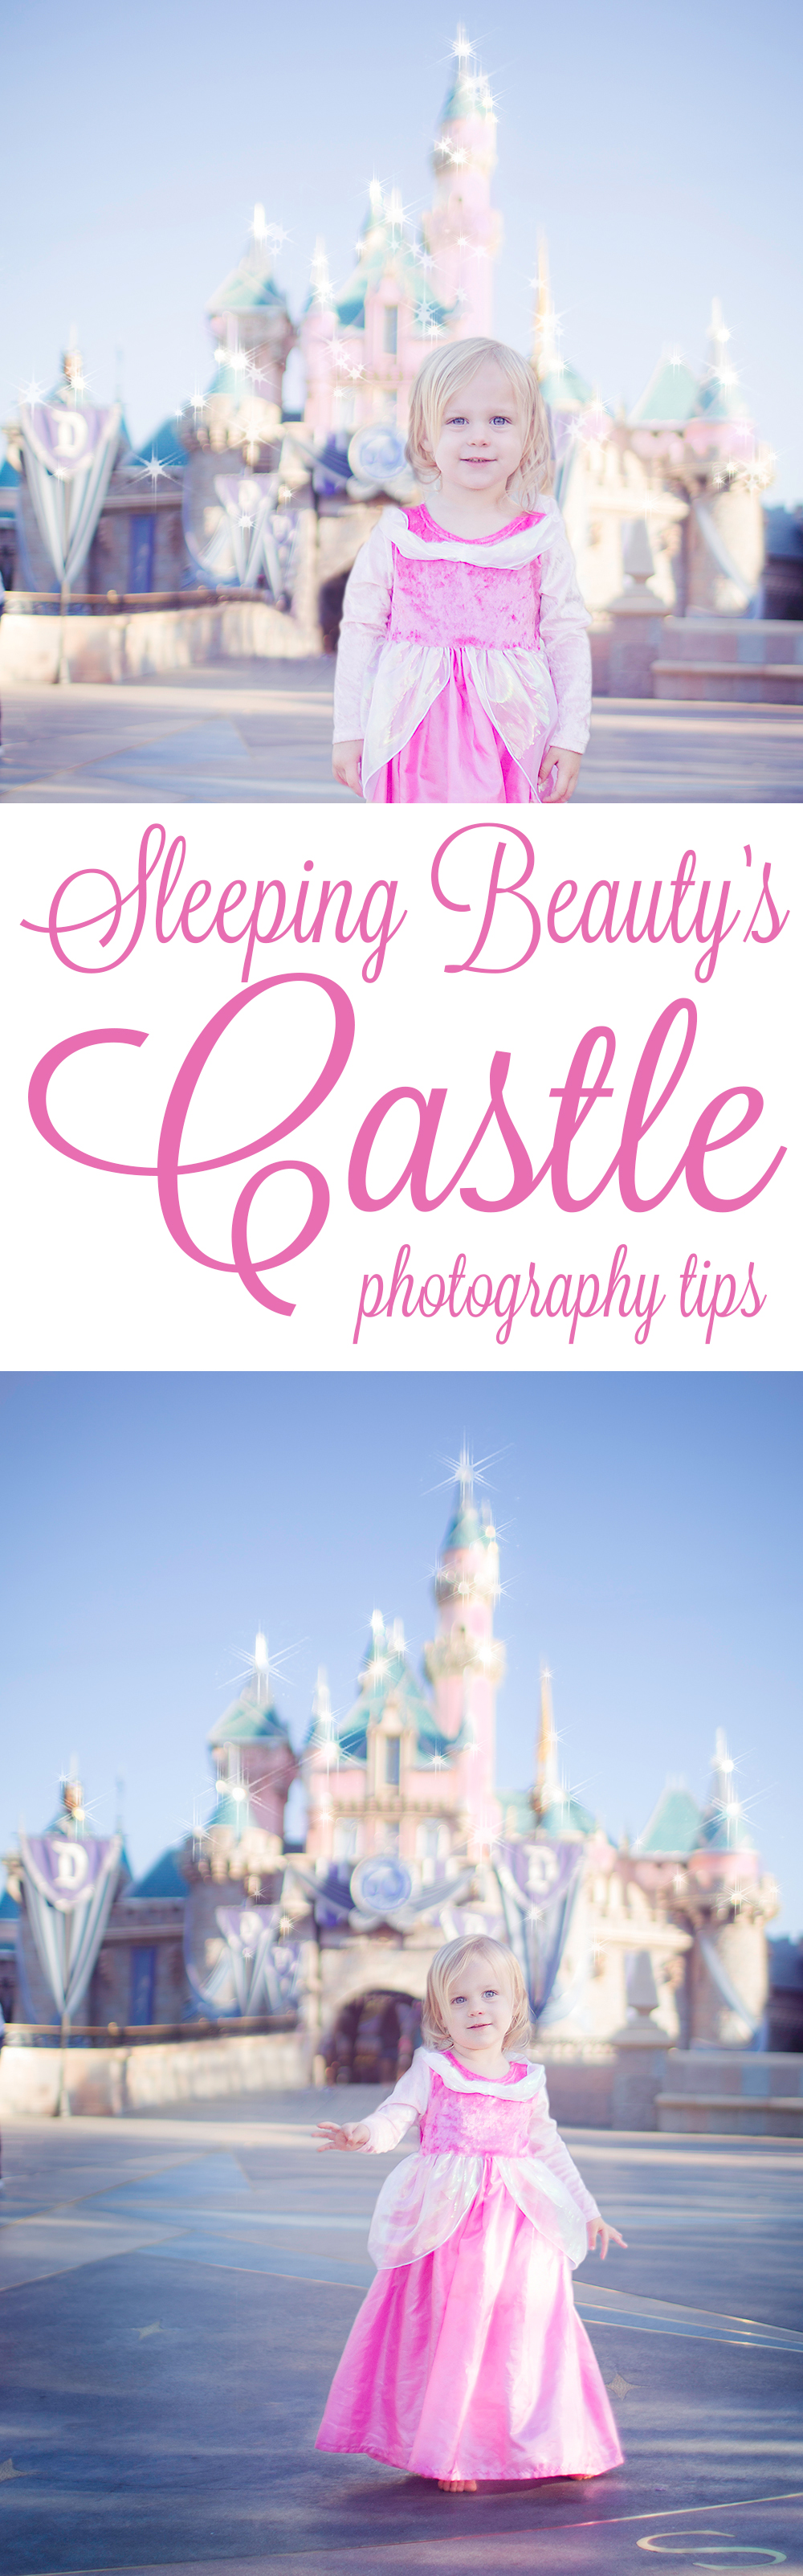 disneyland-sleeping-beauty-castle-photography